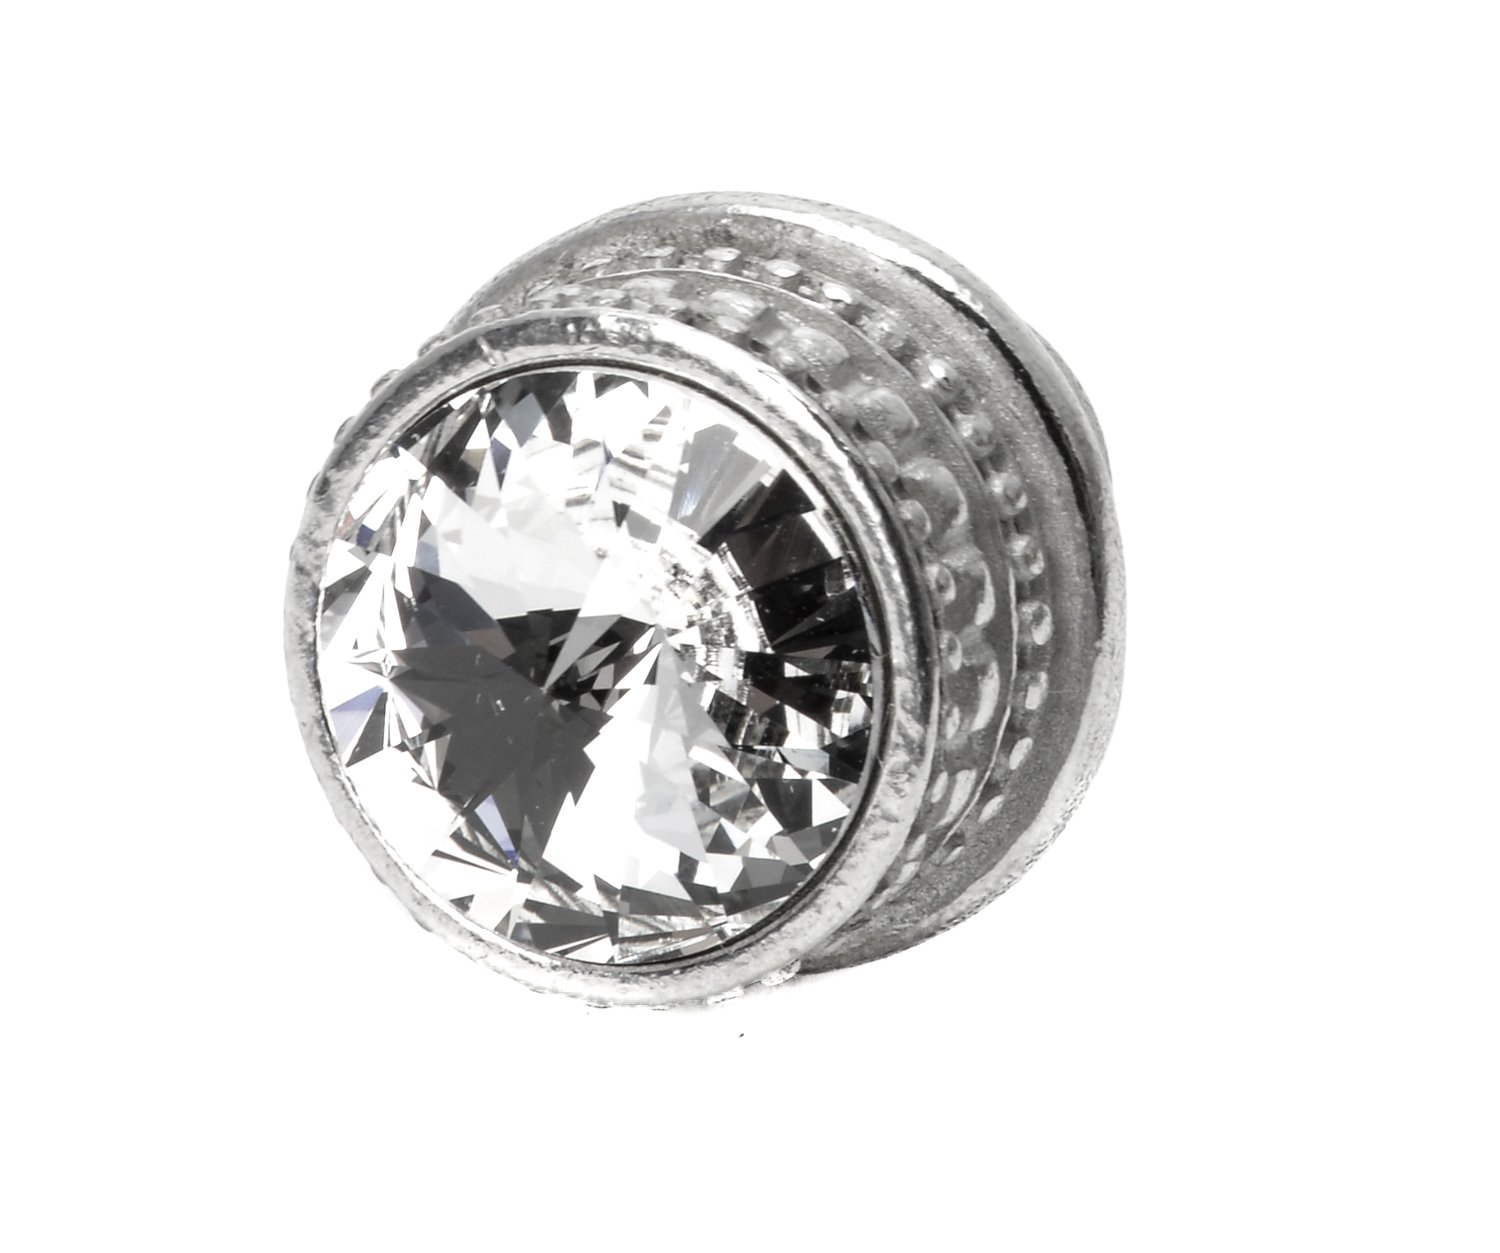 Platinum Carpe Diem Hardware 860-24C Cache Round Knob with 18mm Crystal Made with Swarovski Crystals Medium